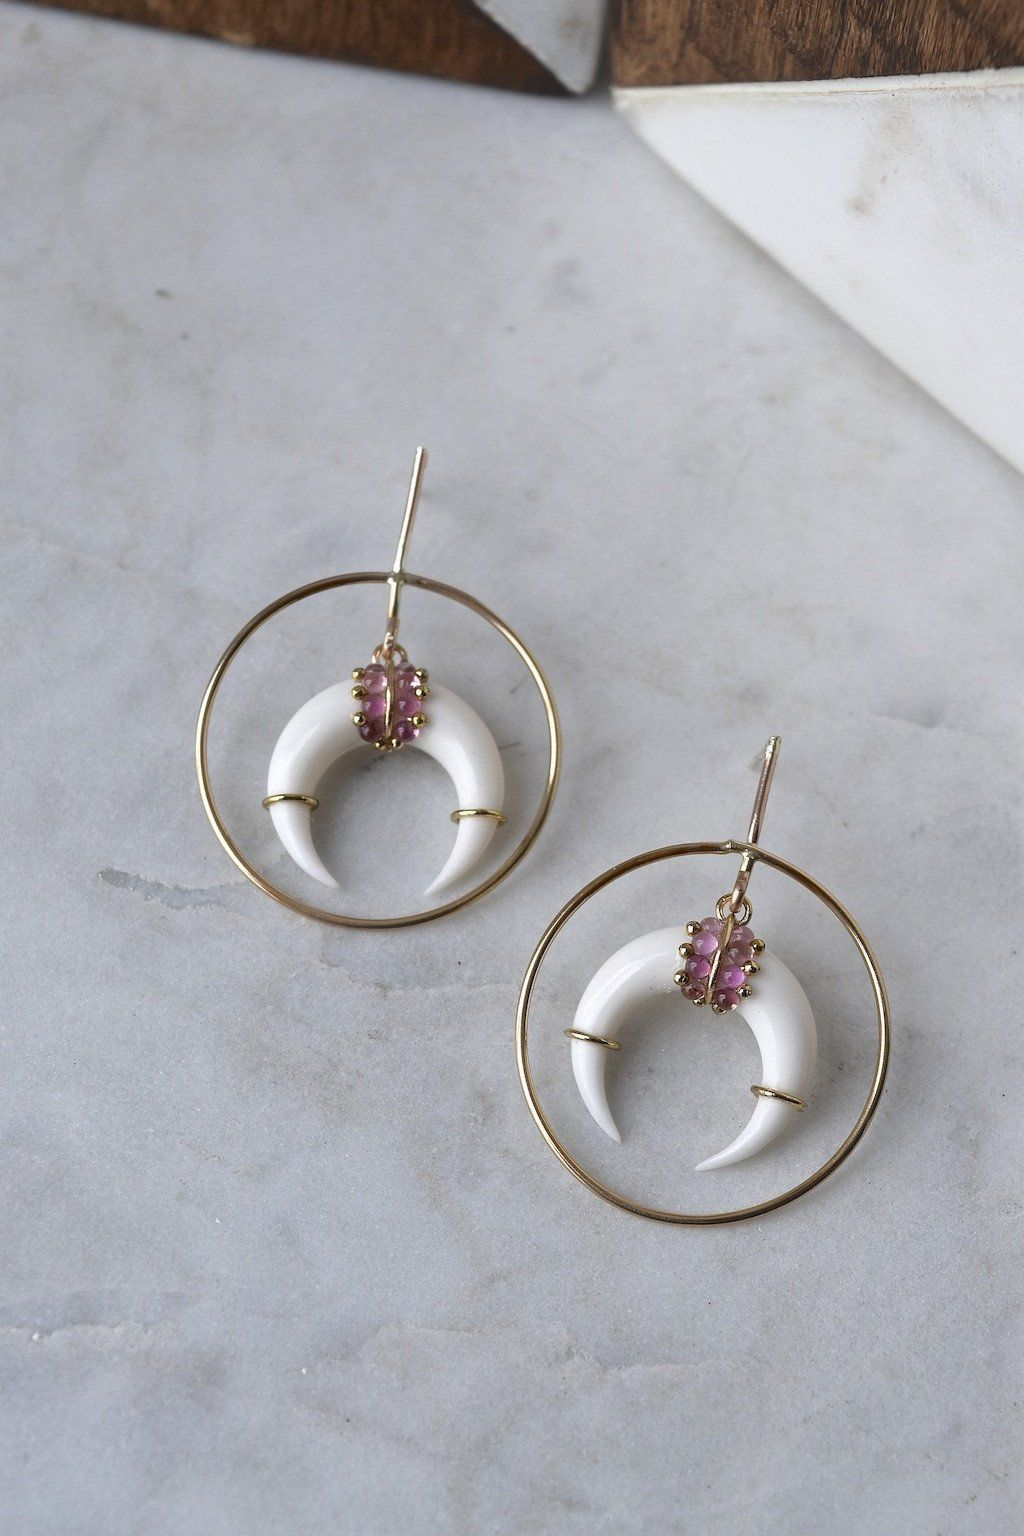 STYLE | Hoop earring with postFINISH | 14kt gold filled